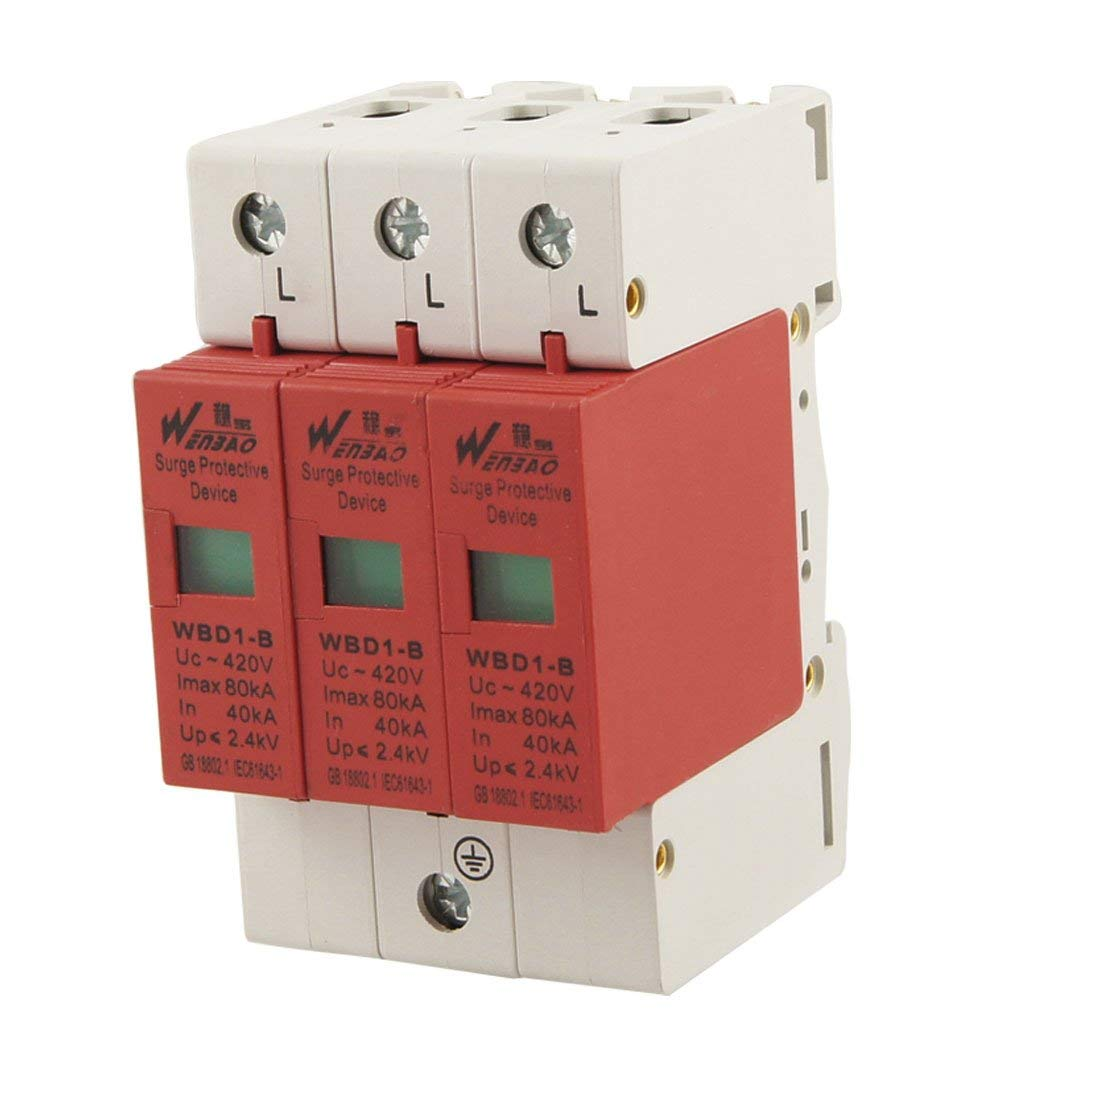 Aexit AC 420V Power Protection 80KA Max Current 40KA 3P Din Rail Mount Surge Protection Surge Protectors Device Arrester